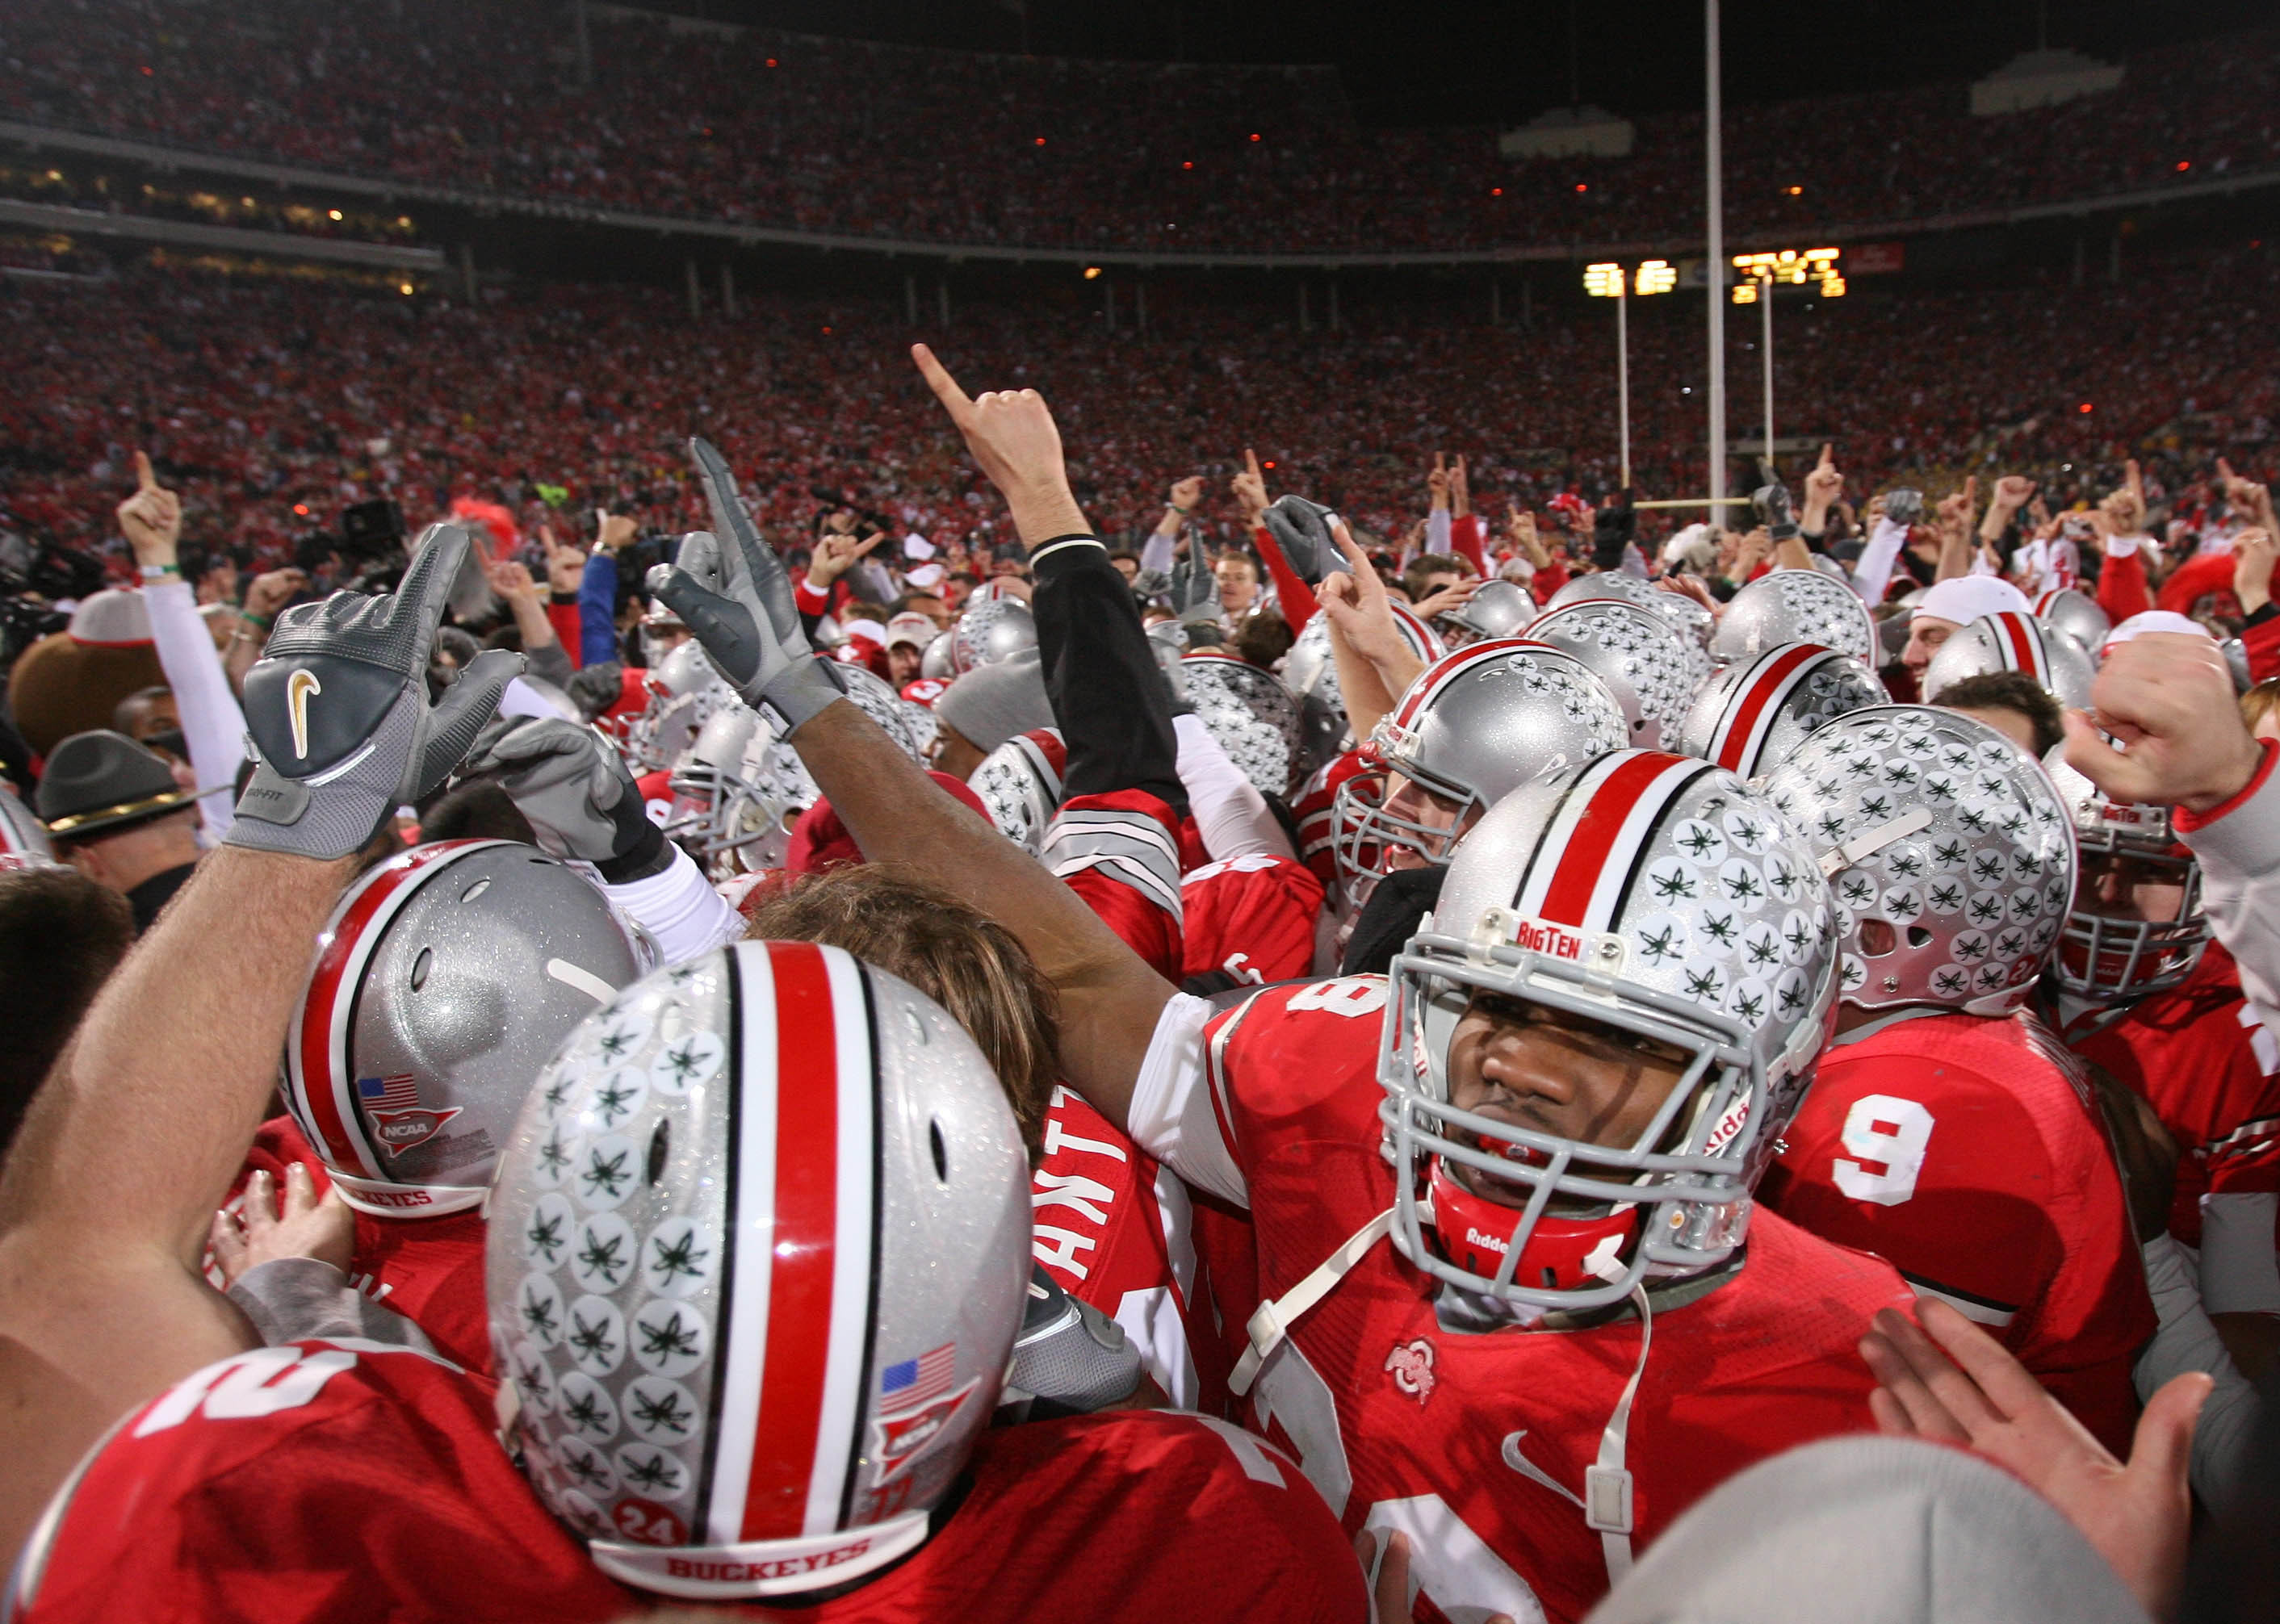 2824x2012 ... ohio state buckeyes college football 2824x2016 desktop wallpapers ...